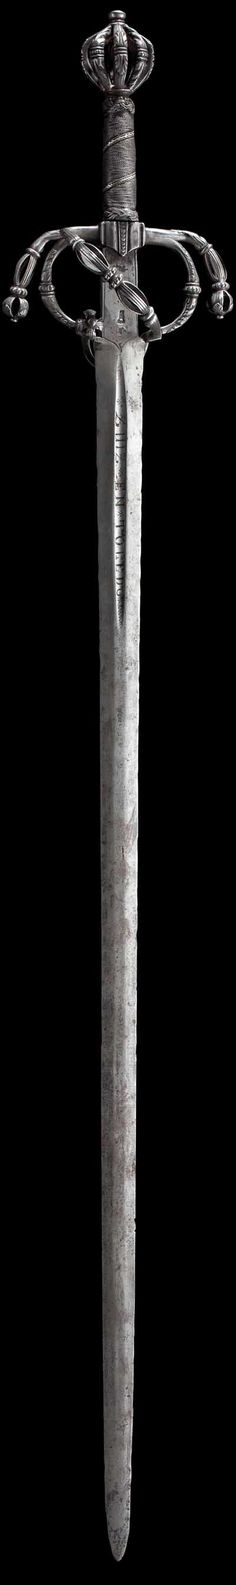 """An Italian sword with cut iron hilt circa 1560/70 Double-edged, flatly ridged blade, the ricasso stamped """"MZ"""" under a crown on both sides. The short groove etched with """"DE FRANCISCO ZUIZ EN TOLEDO"""". Finely cut and open-work iron hilt (loosened, slightly curved up at the ricasso) with pas d'*ne on the reverse side. Iron wire grip traversed by silver and with Turkïs heads. Length 107.5 cm. Lavishly cut hilt. http://www.hermann-historica.de/auktion/images63_max/18973.jpg"""